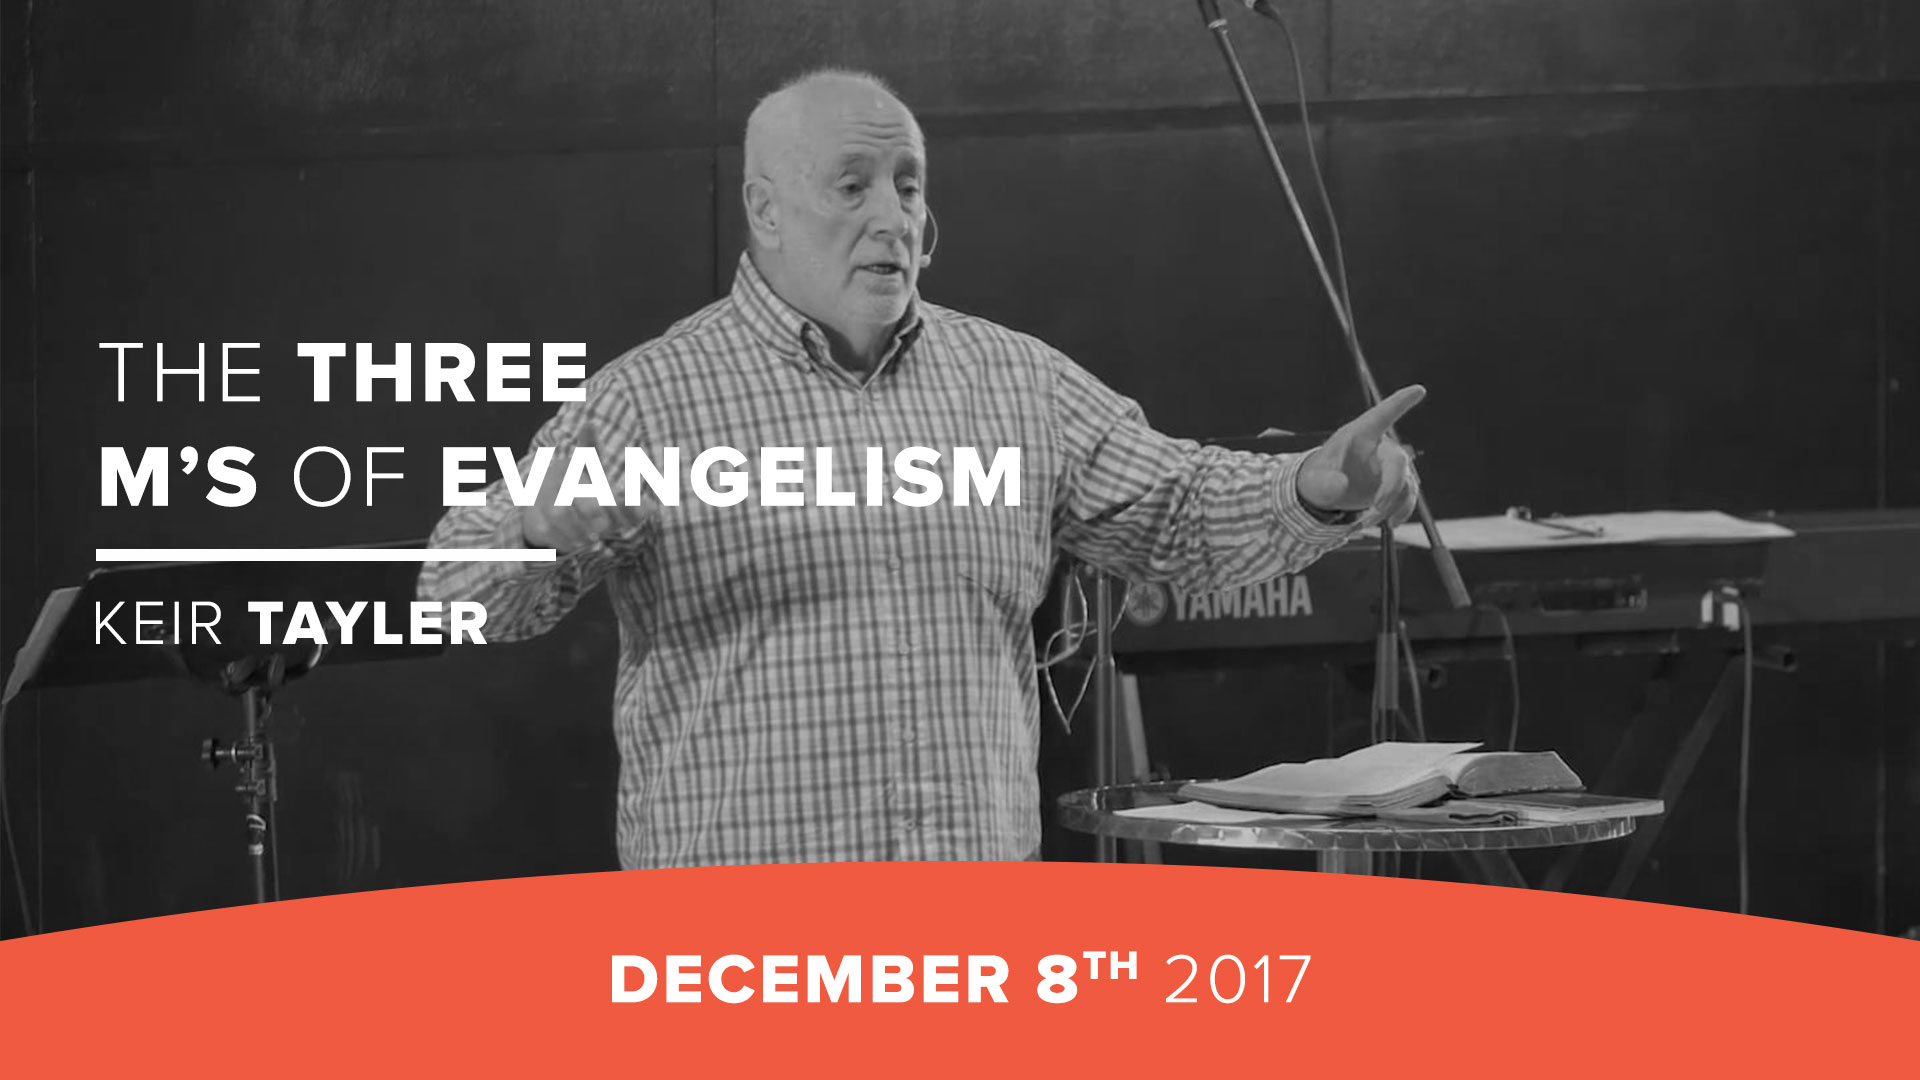 The three M's of evangelism